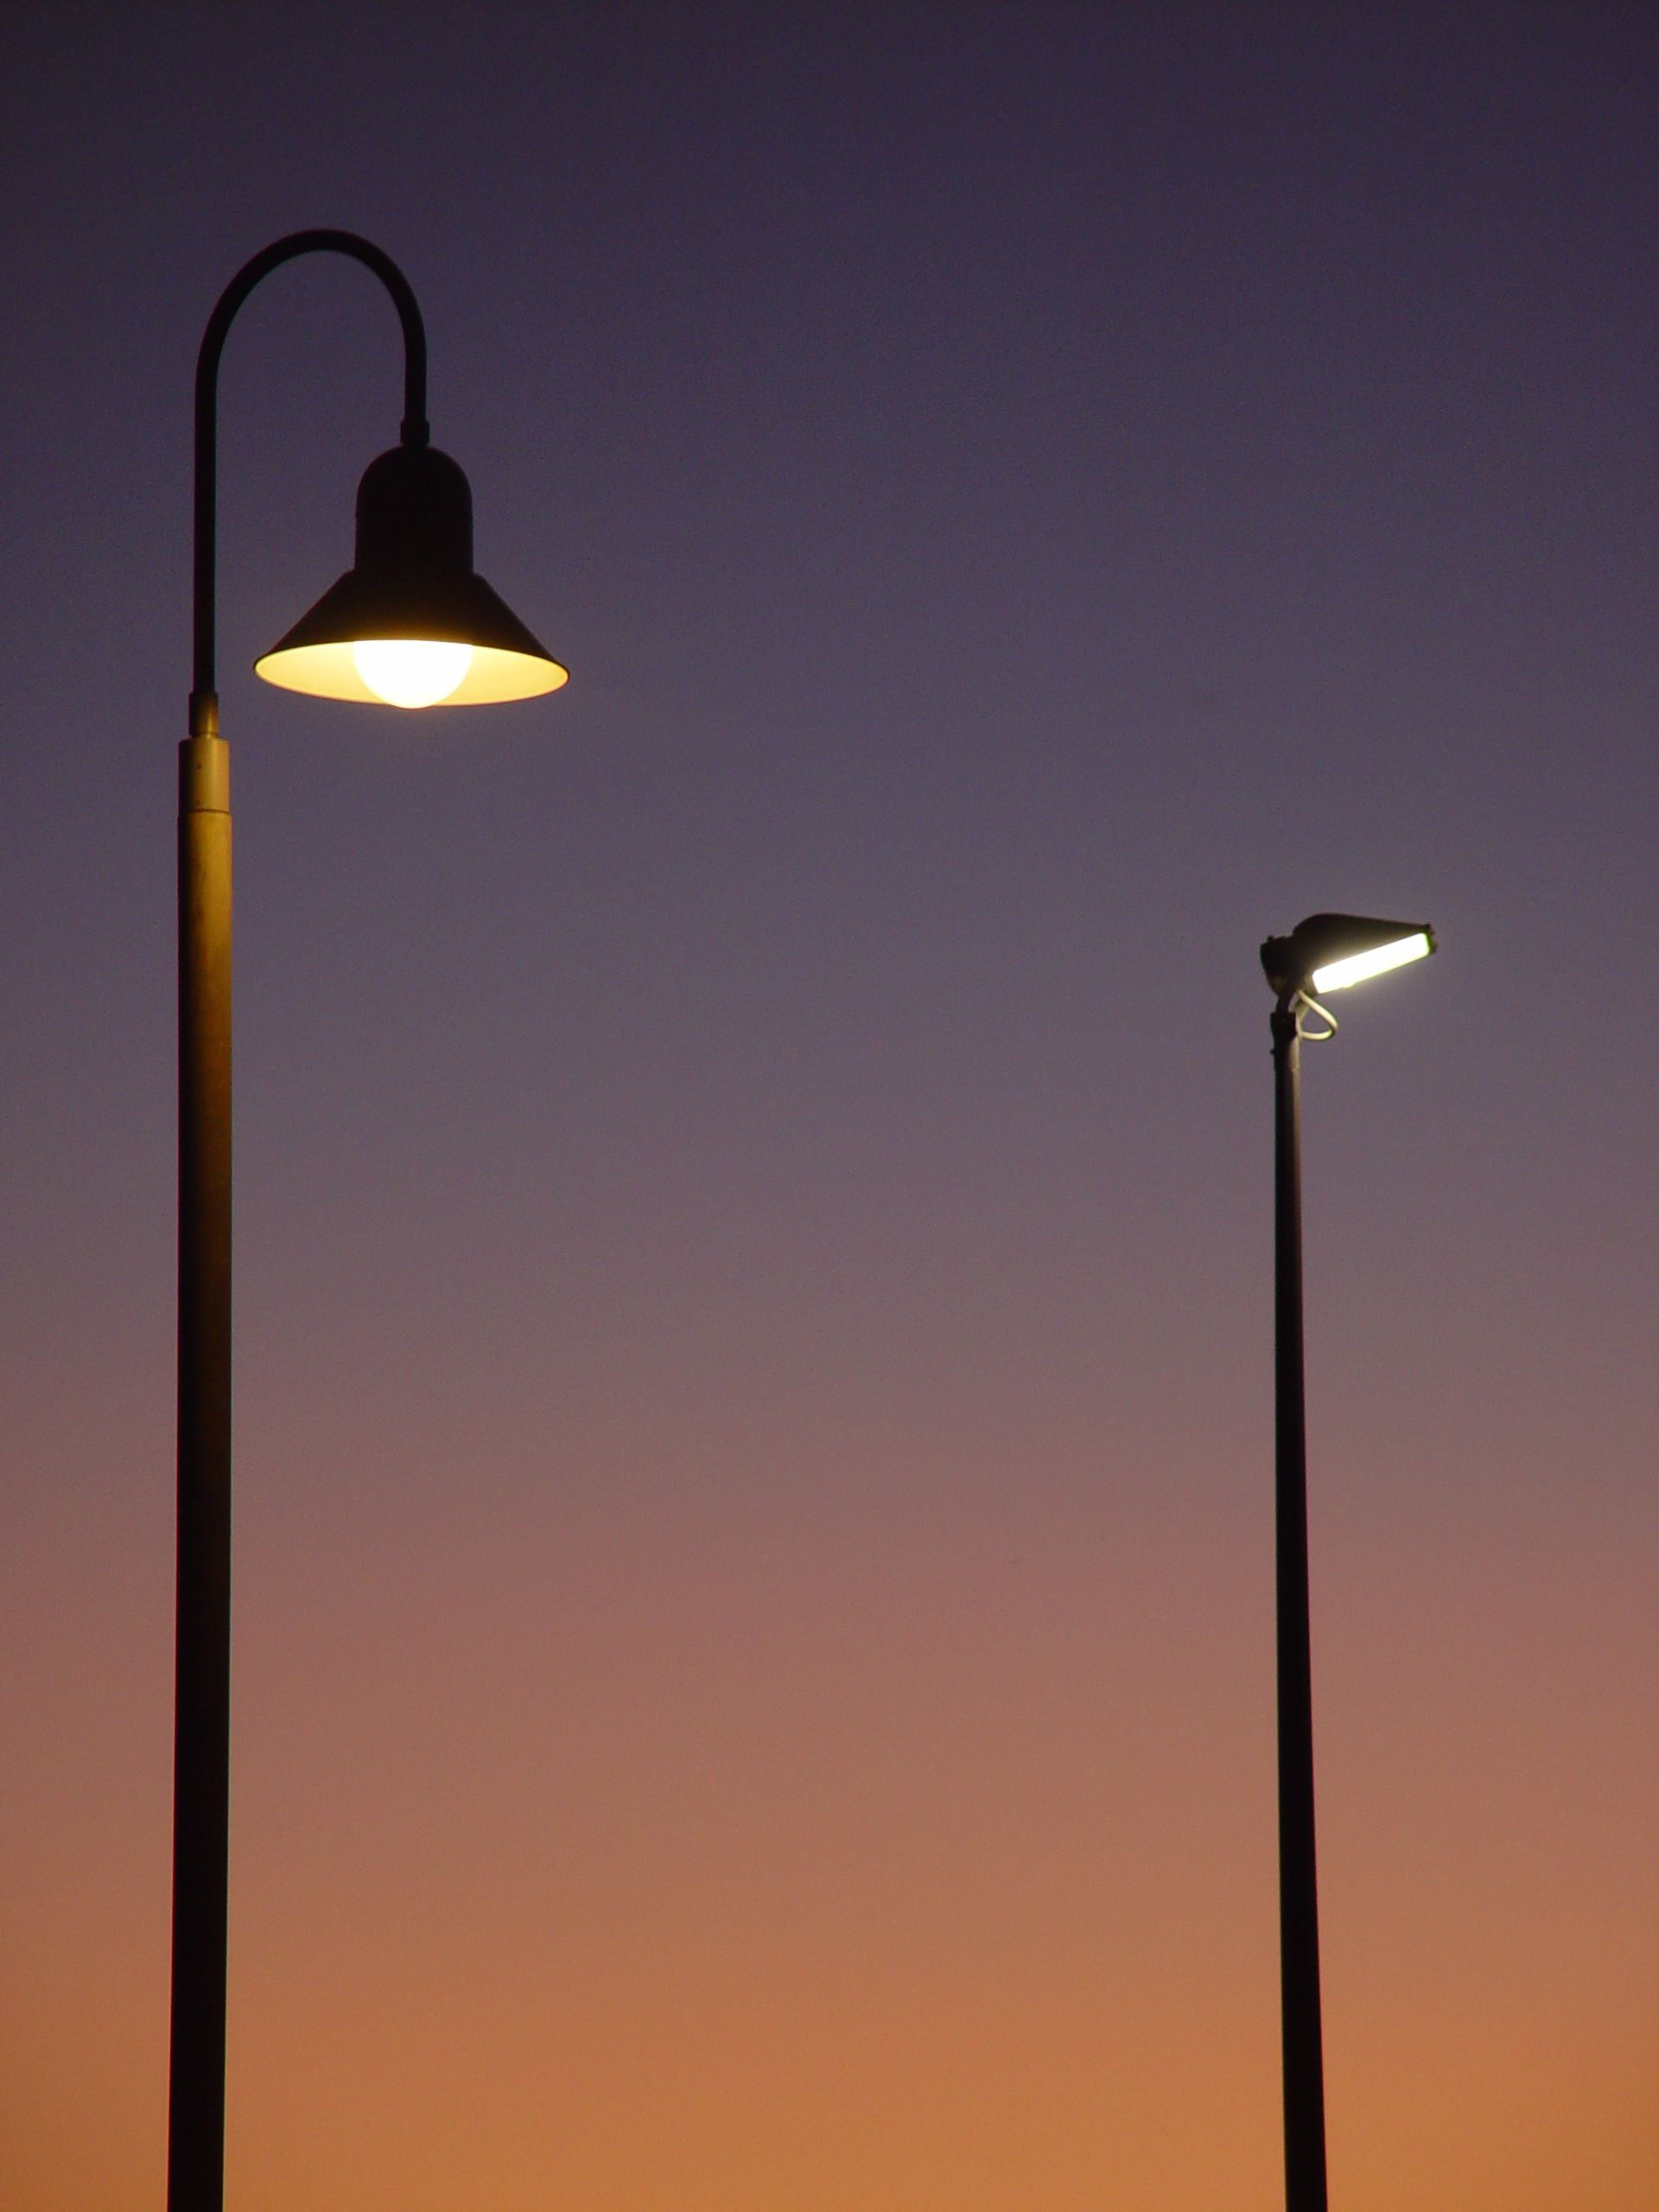 File:Street lights in evening.jpg - Wikimedia Commons